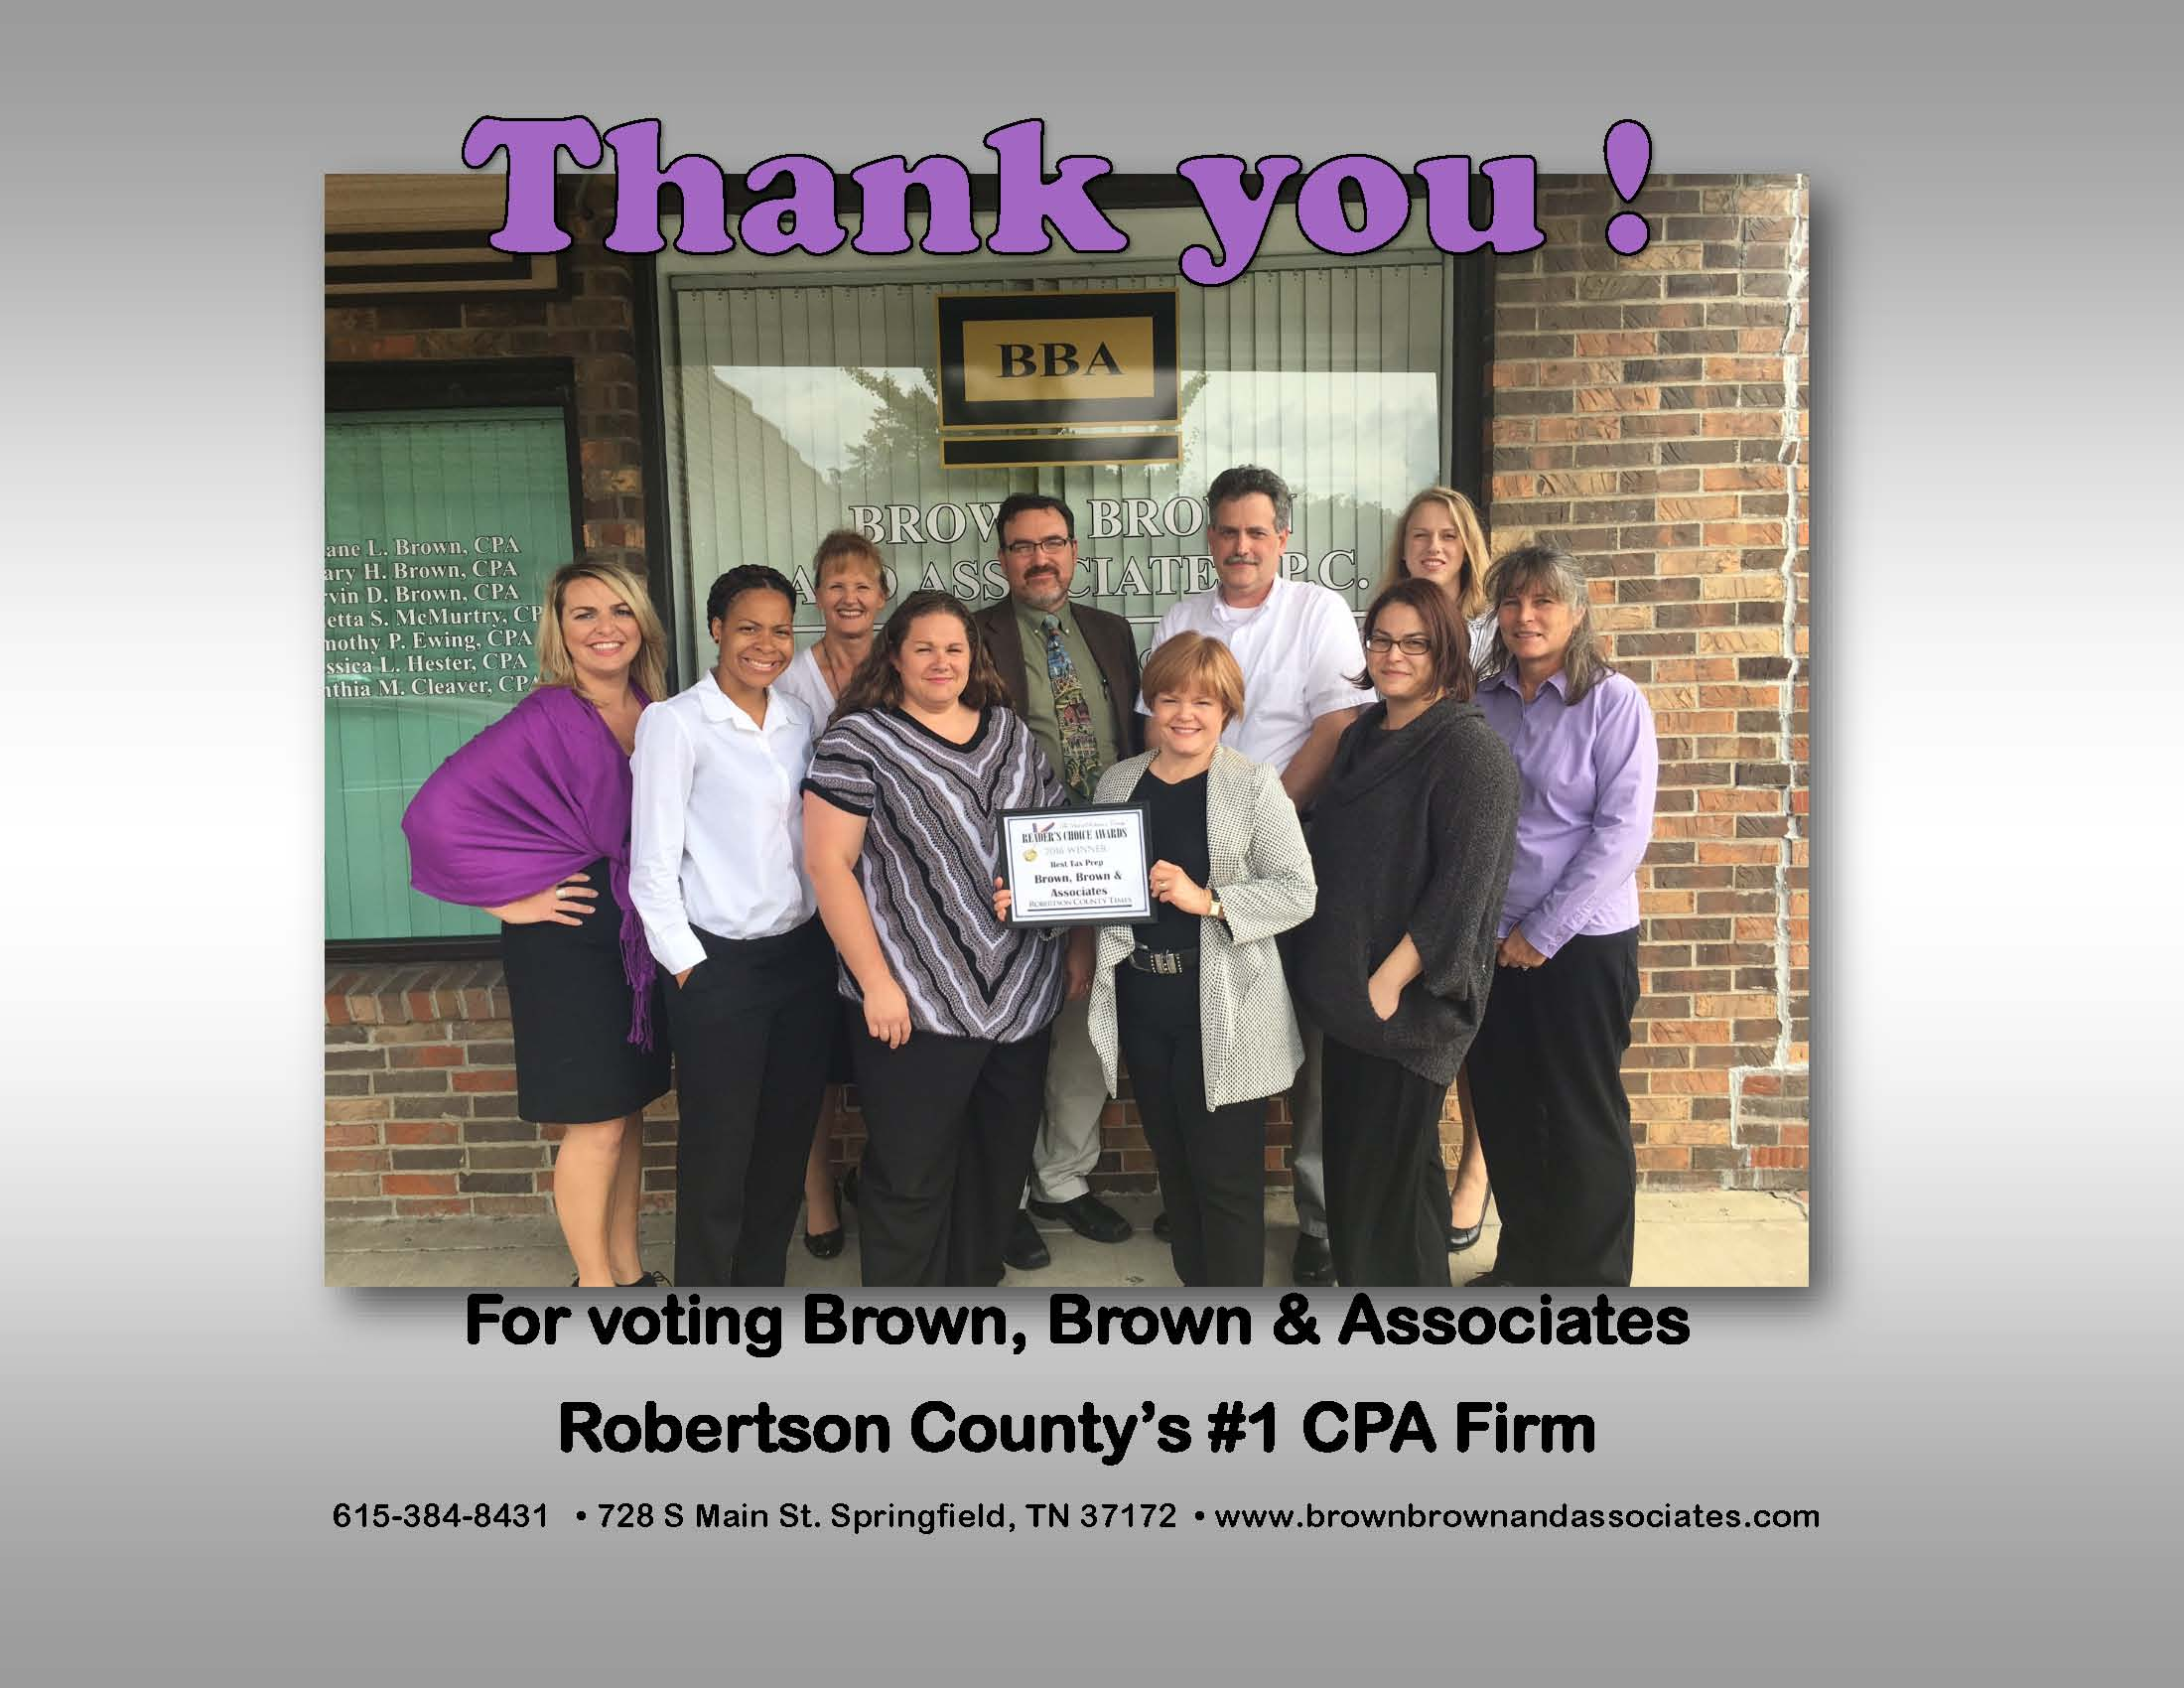 Tennessee robertson county springfield - Thank You For Voting Us The 1 Cpa Firm In Robertson County